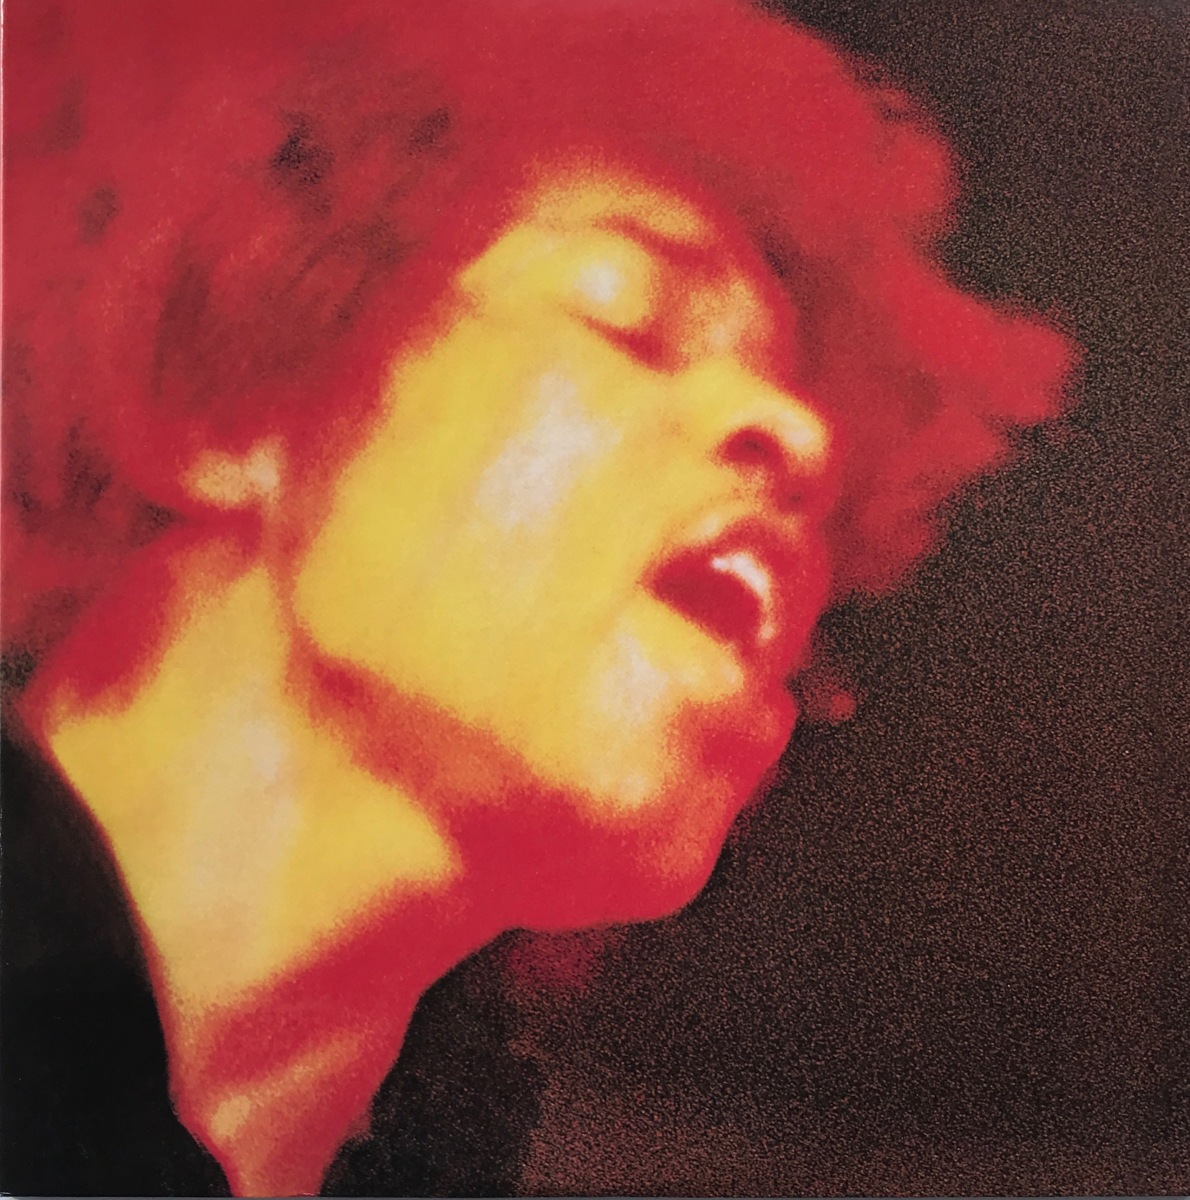 HAVE YOU EVER BEEN TO ELECTRIC LADYLAND?